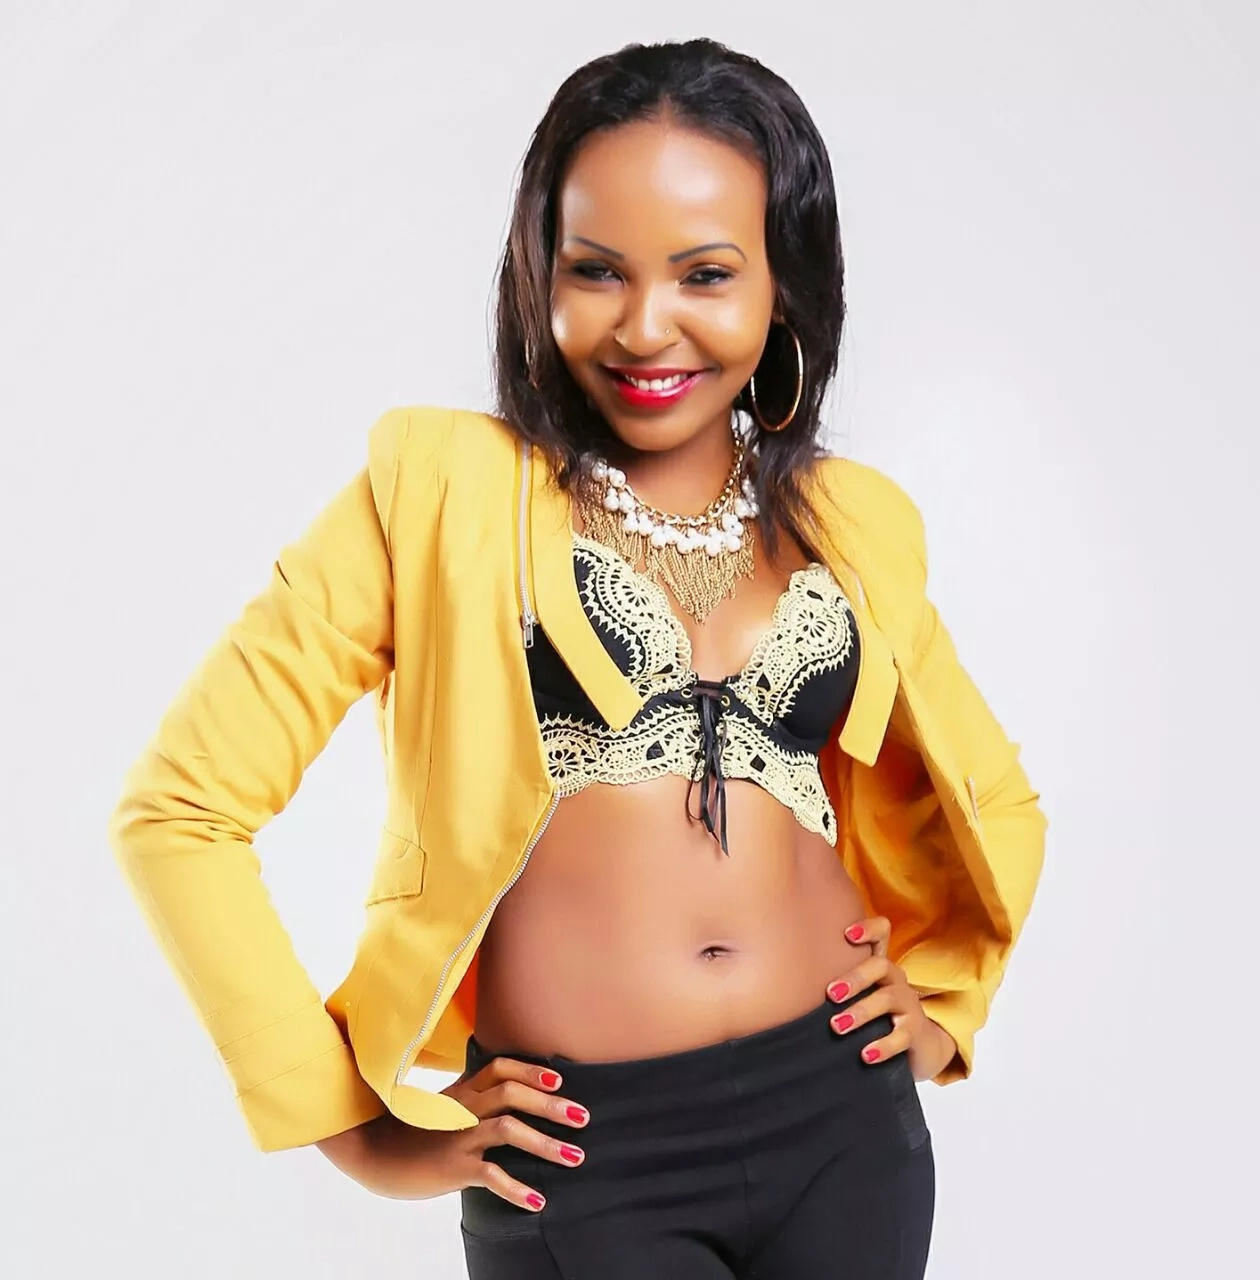 Kenyan TV girl has posted these spicy photos on the internet and everyone is going crazy